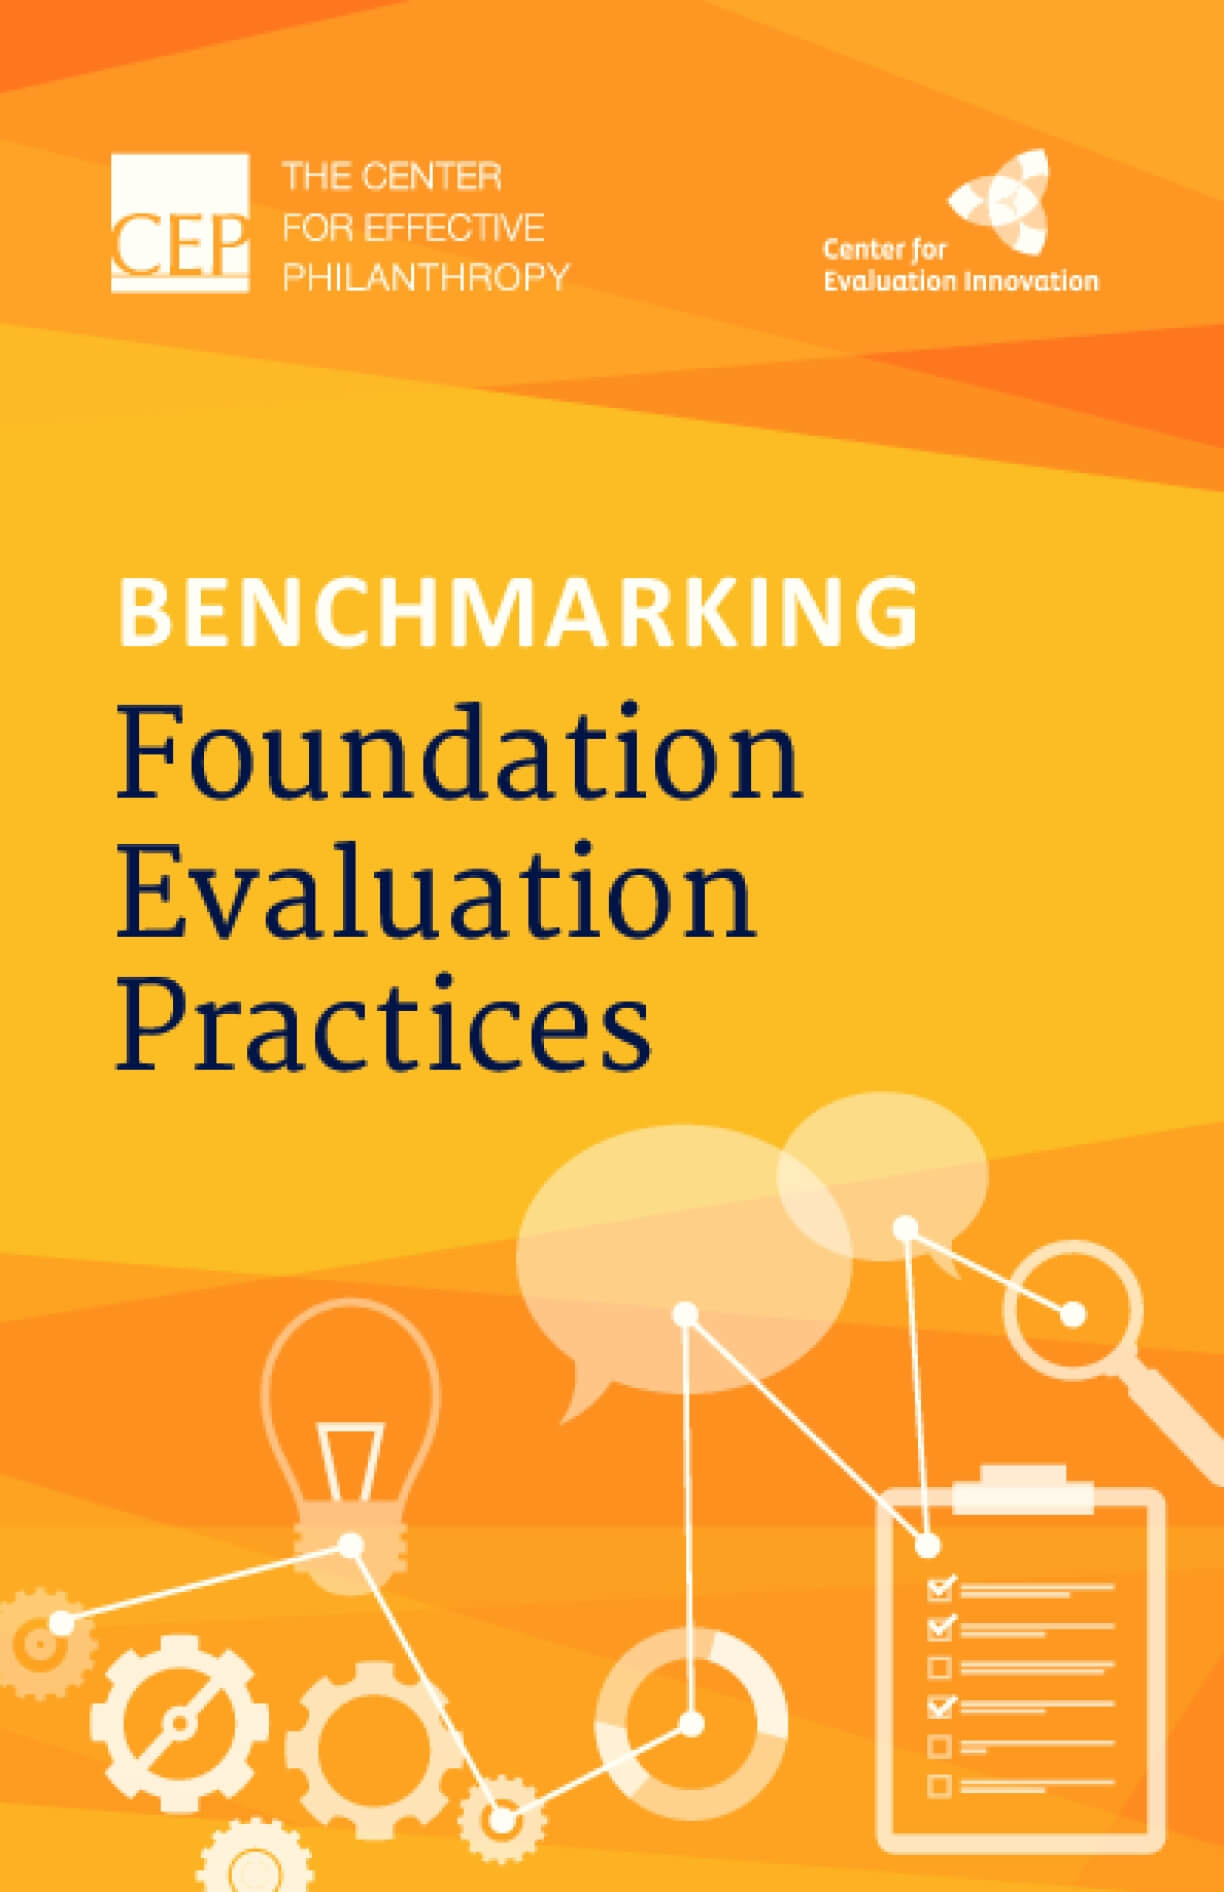 Benchmarking Foundation Evaluation Practices